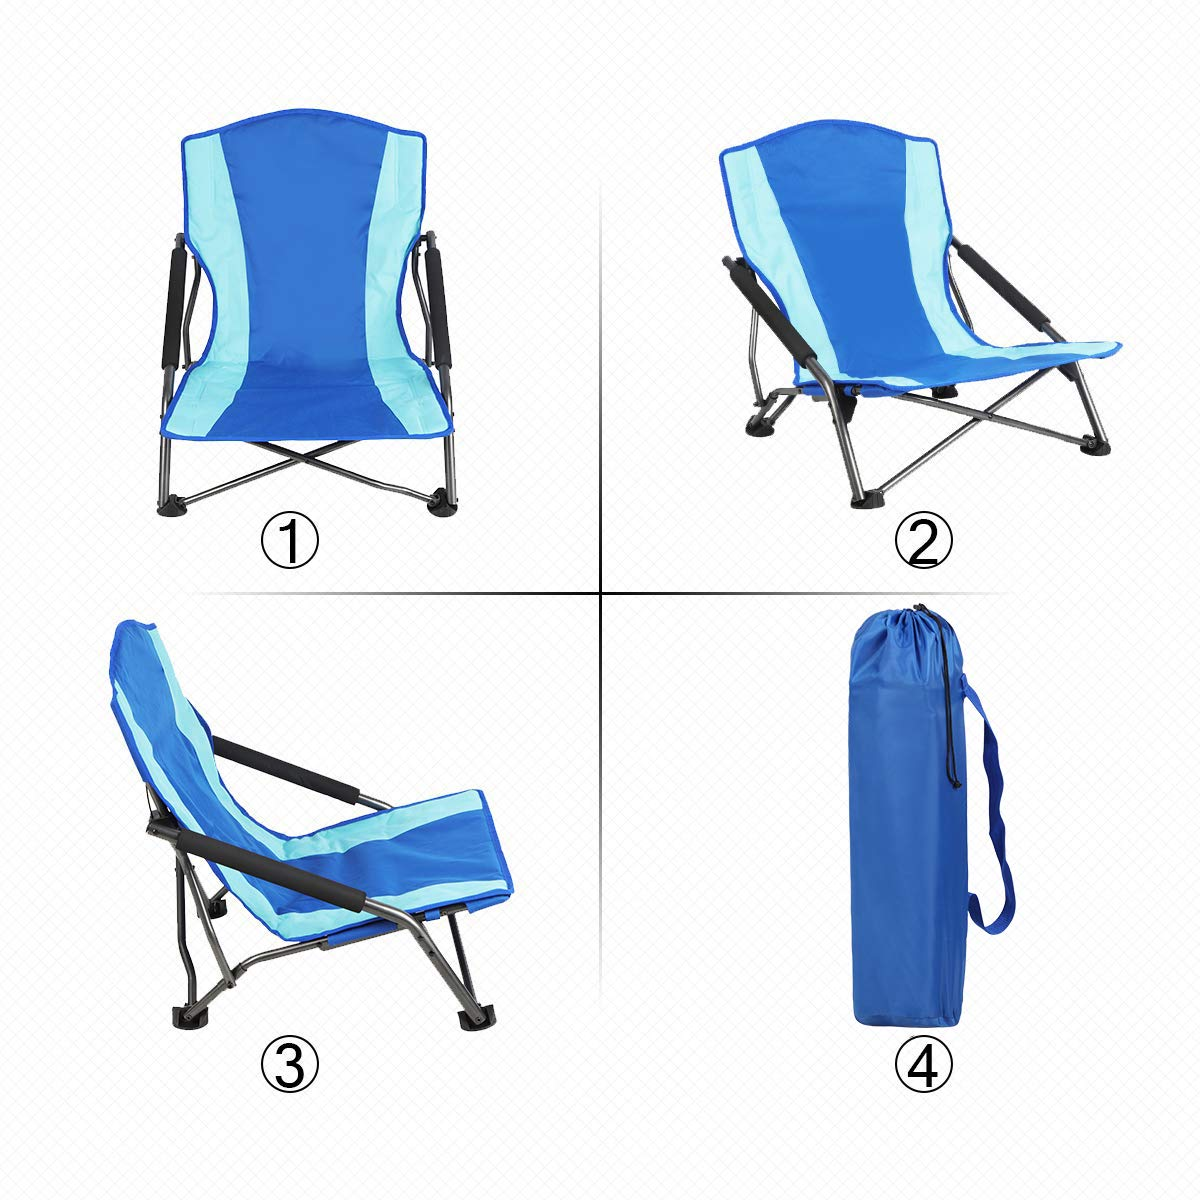 PORTAL Low Beach Camp Chair Folding Compact Picnic Concert Festival Chair with Carry Bag Hengfeng